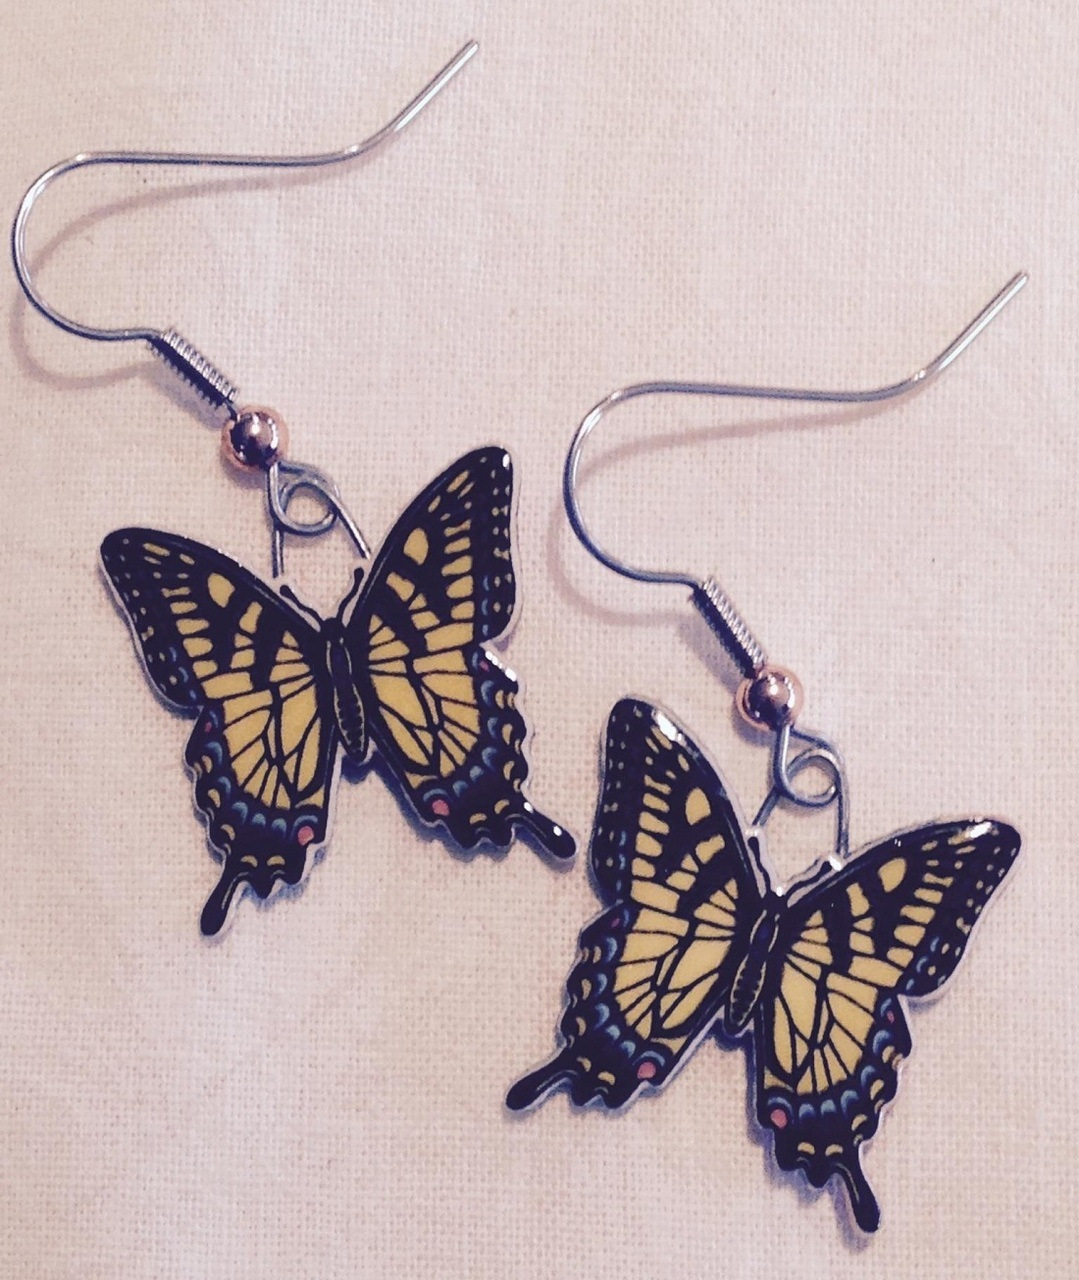 Tiger Swallowtail Butterfly Earrings 427Z 1